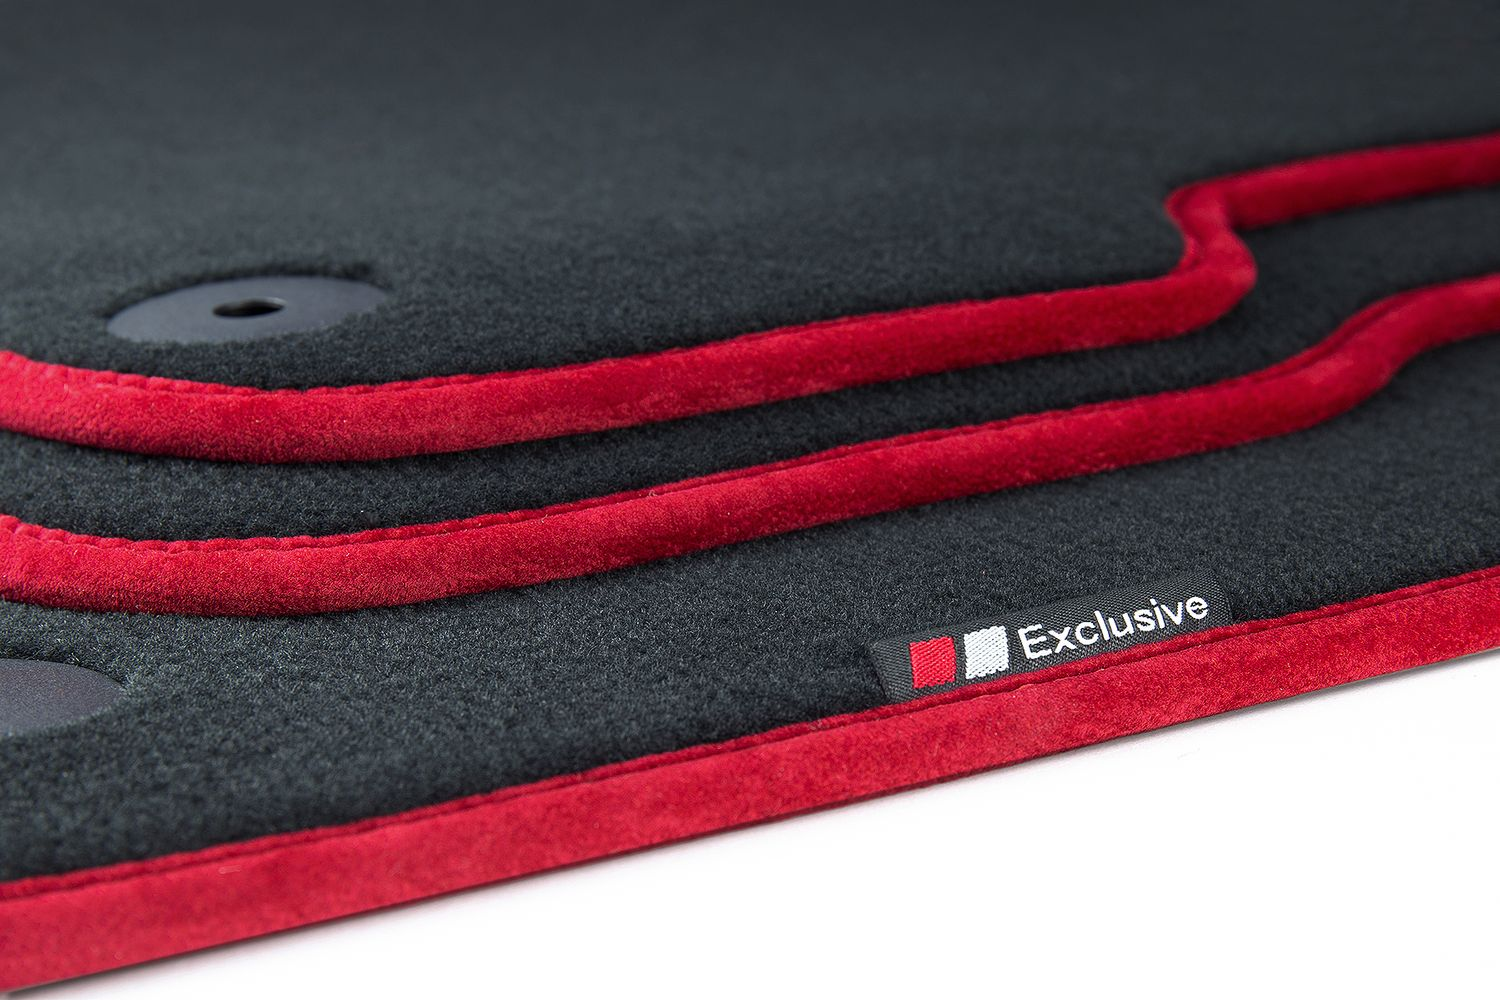 Luxury-line car foot mats fits for Mercedes E-Class W211 from 2002-2009 L.H.D. only